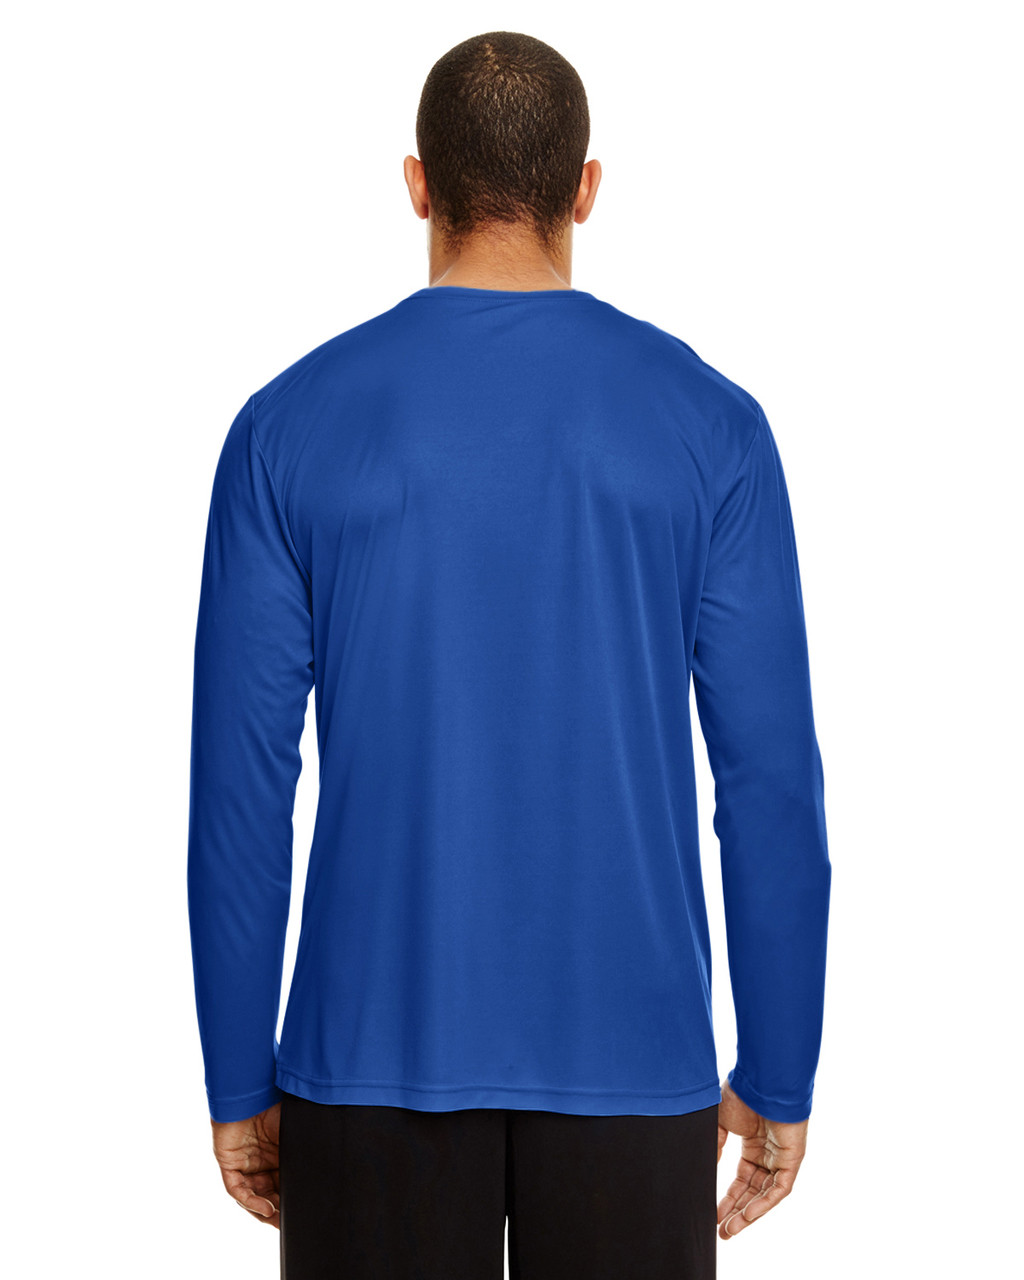 Sport Royal, Back - TT11L Team 365 Men's Zone Performance Long Sleeve T-Shirt | BlankClothing.ca